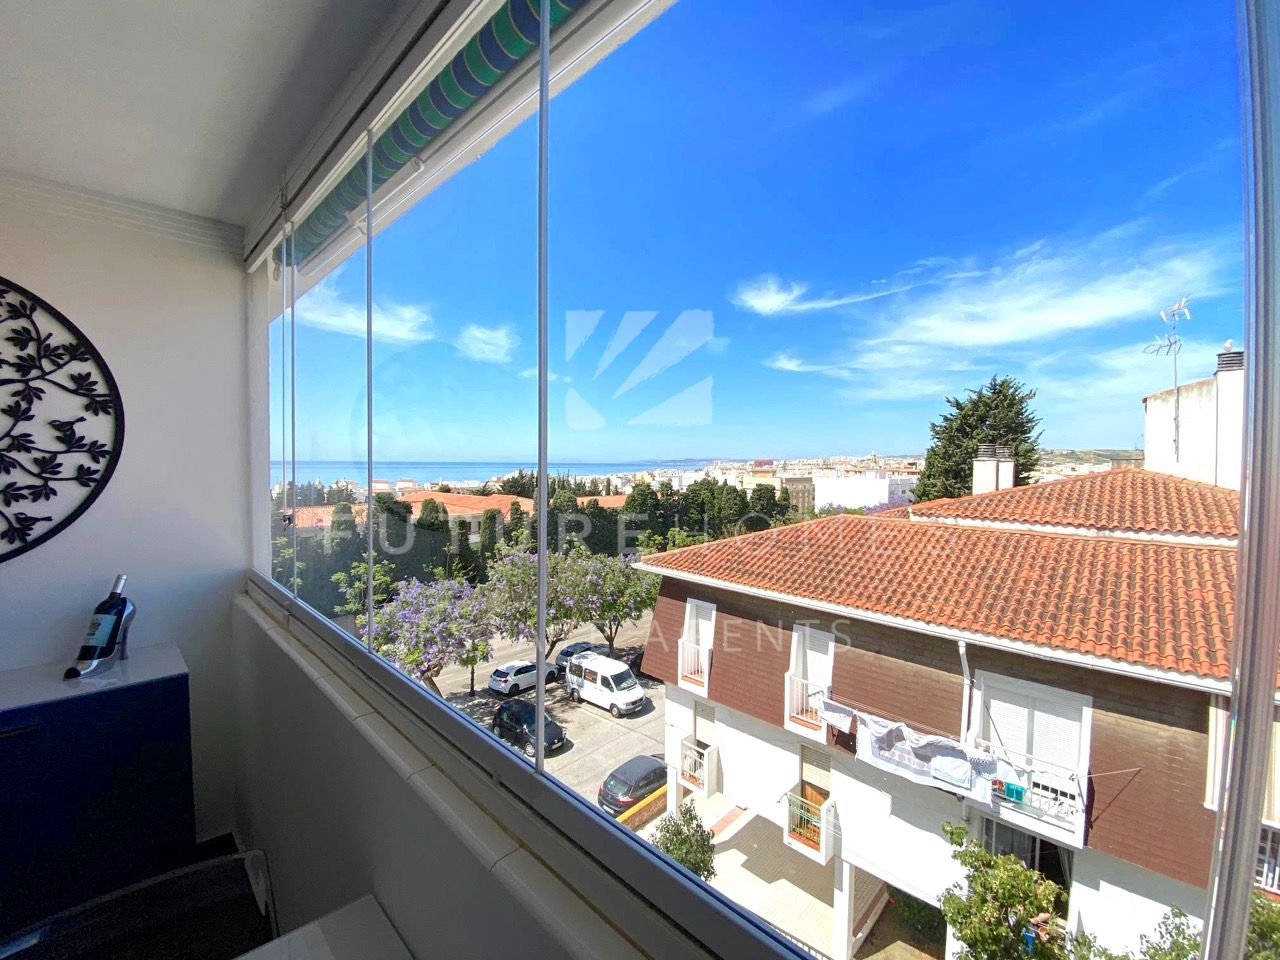 Modern recently renovated apartment in Estepona town just 300m from the beach